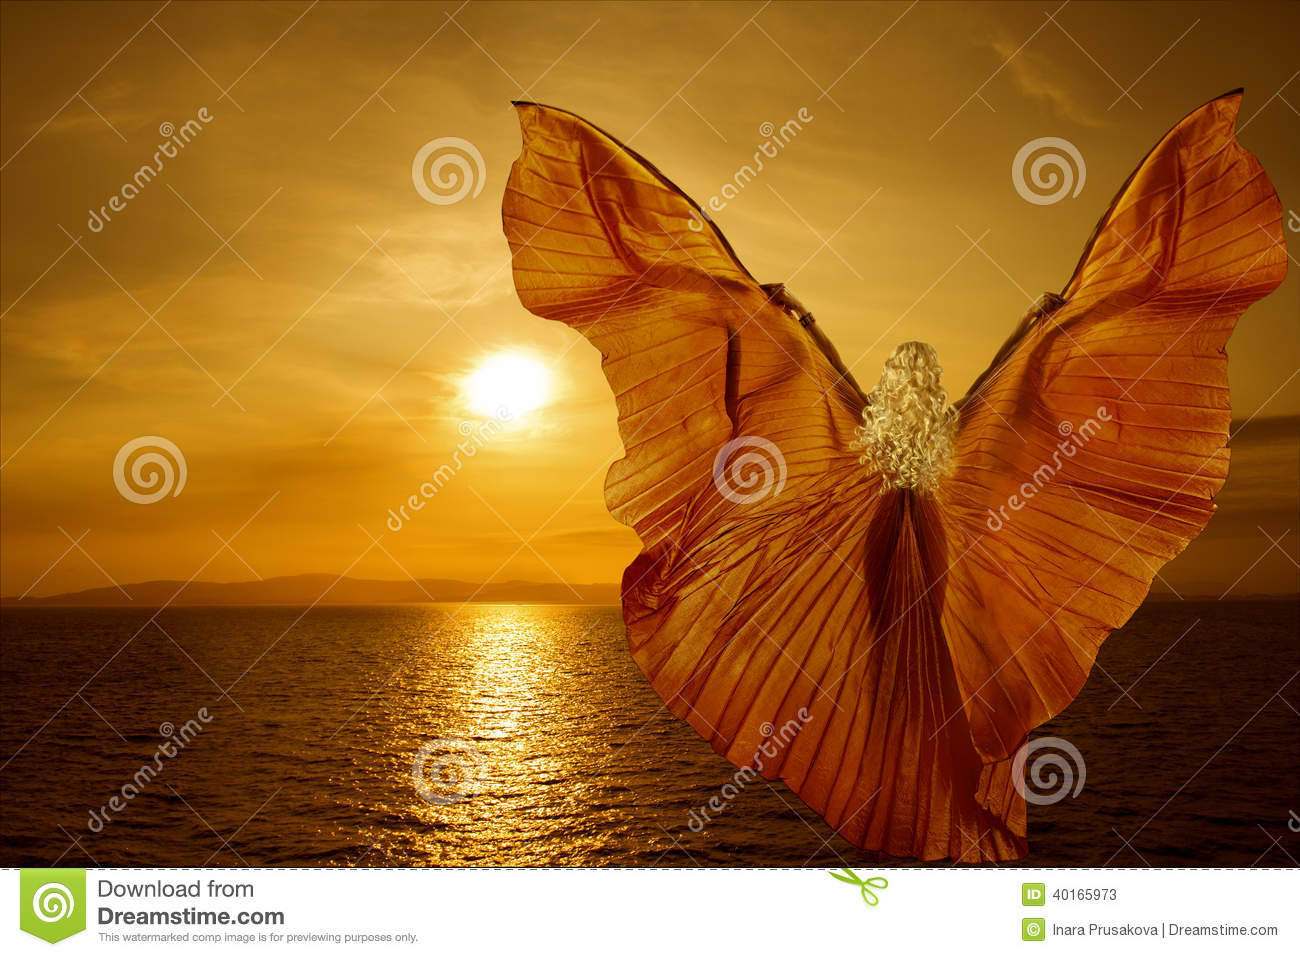 Bon anniv' MariedesBrumes ! Woman-butterfly-wings-flying-fantasy-sea-sunset-relaxation-meditation-concept-40165973